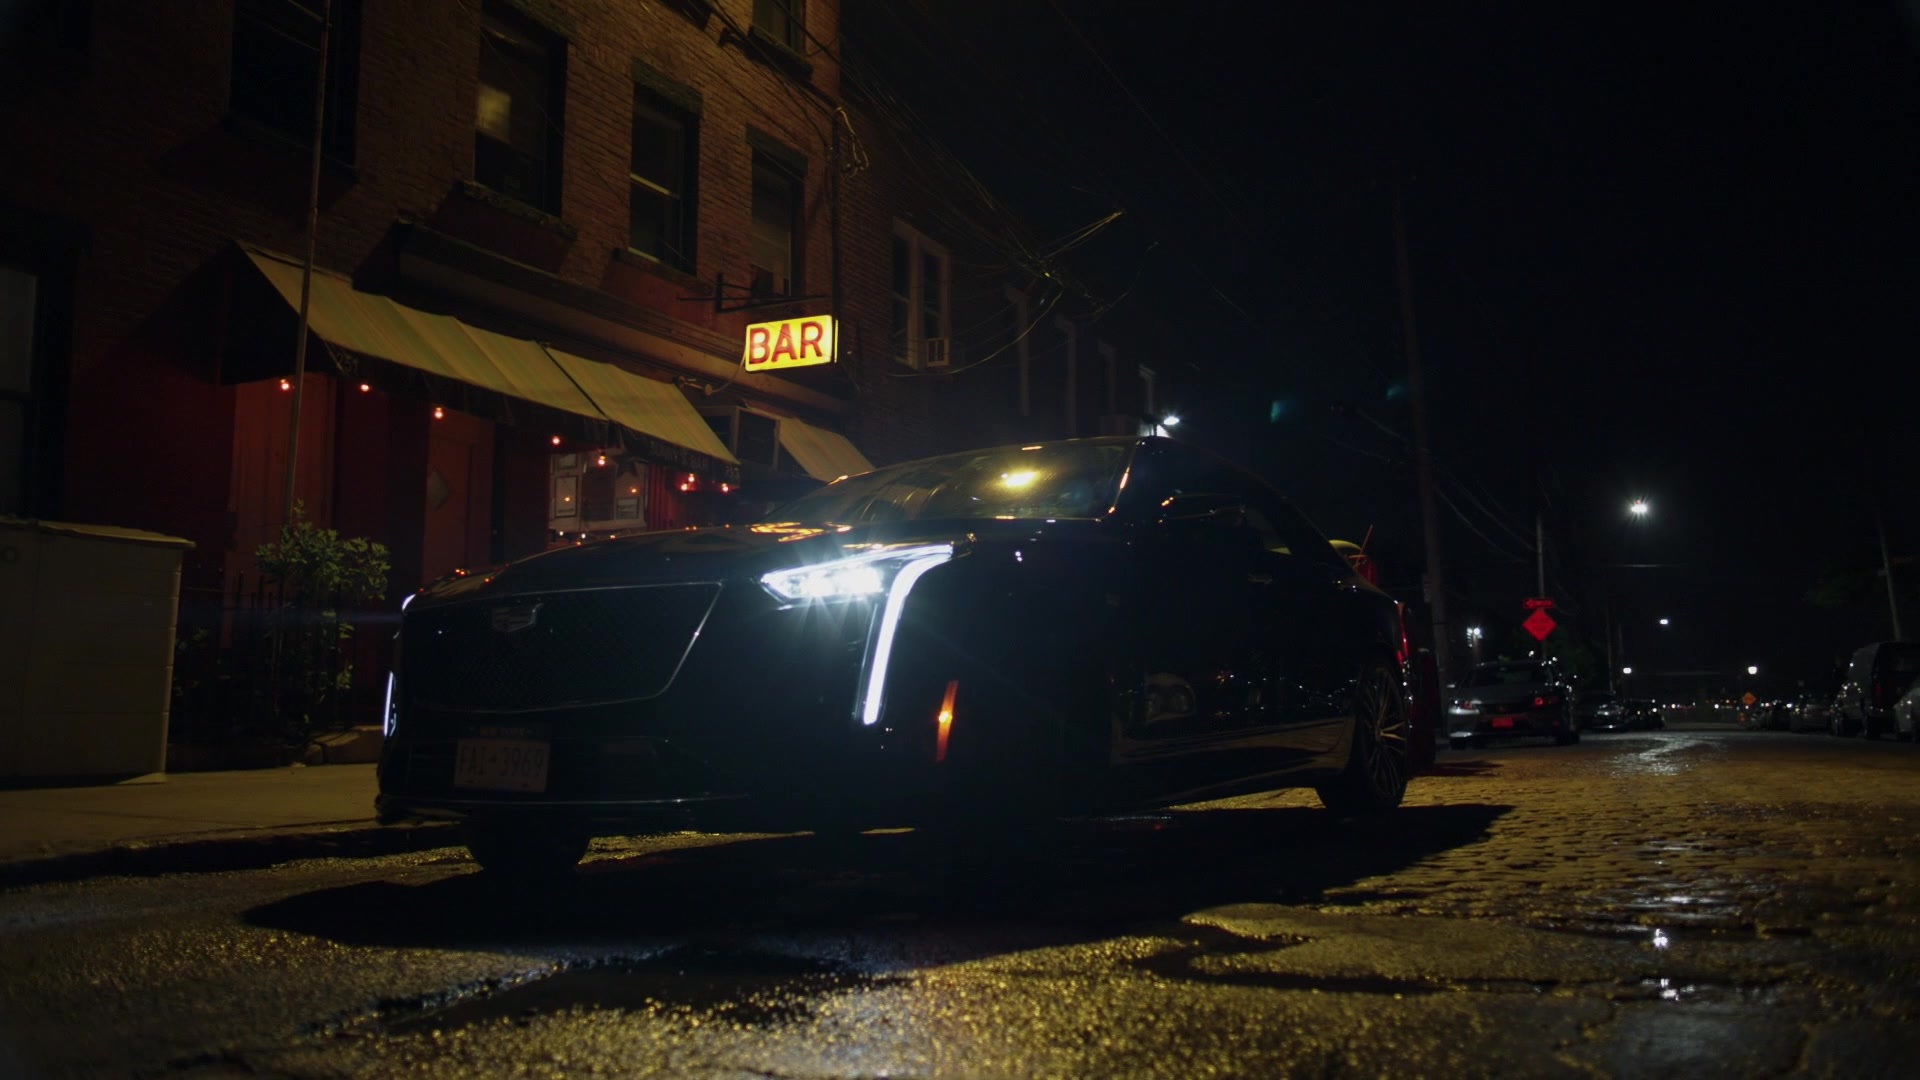 List Of Car Brands >> Cadillac CT6 Car Used by Liev Schreiber in Ray Donovan ...